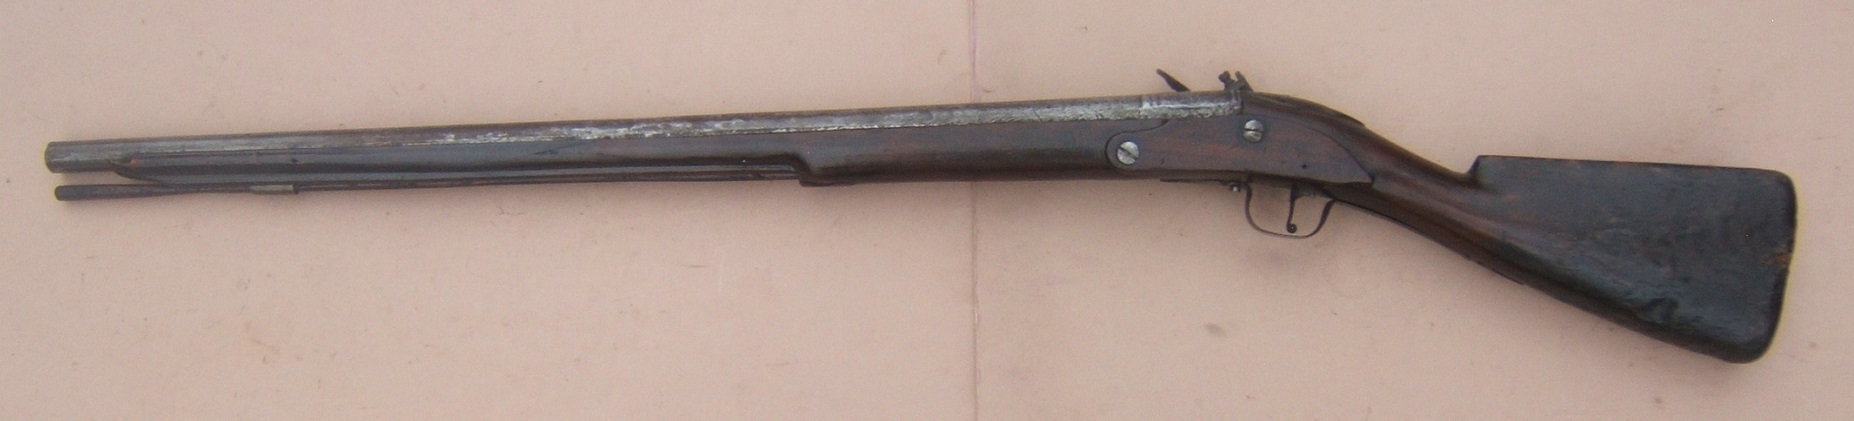 A VERY RARE ENGLISH/EARLY COLONIAL AMERICAN PERIOD ENGLISH DOGLOCK MUSKET, ca. 1650 view 2